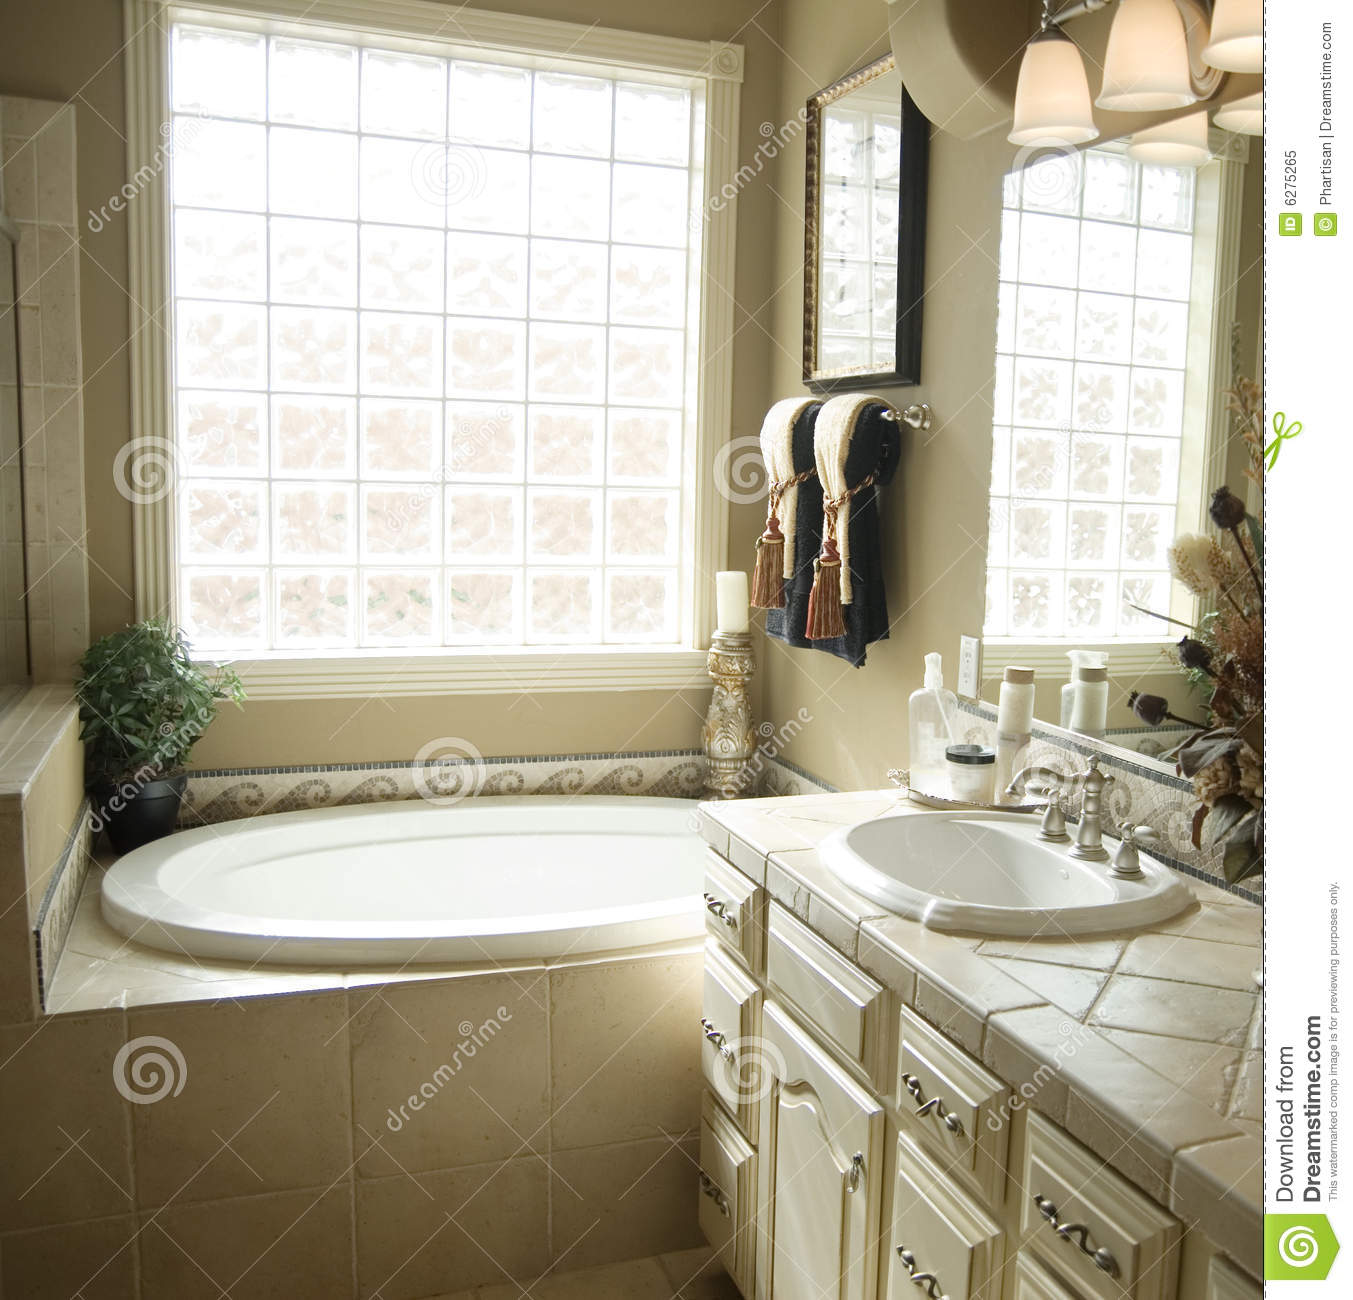 Beautiful bathroom interior design royalty free stock for Free bathroom designs